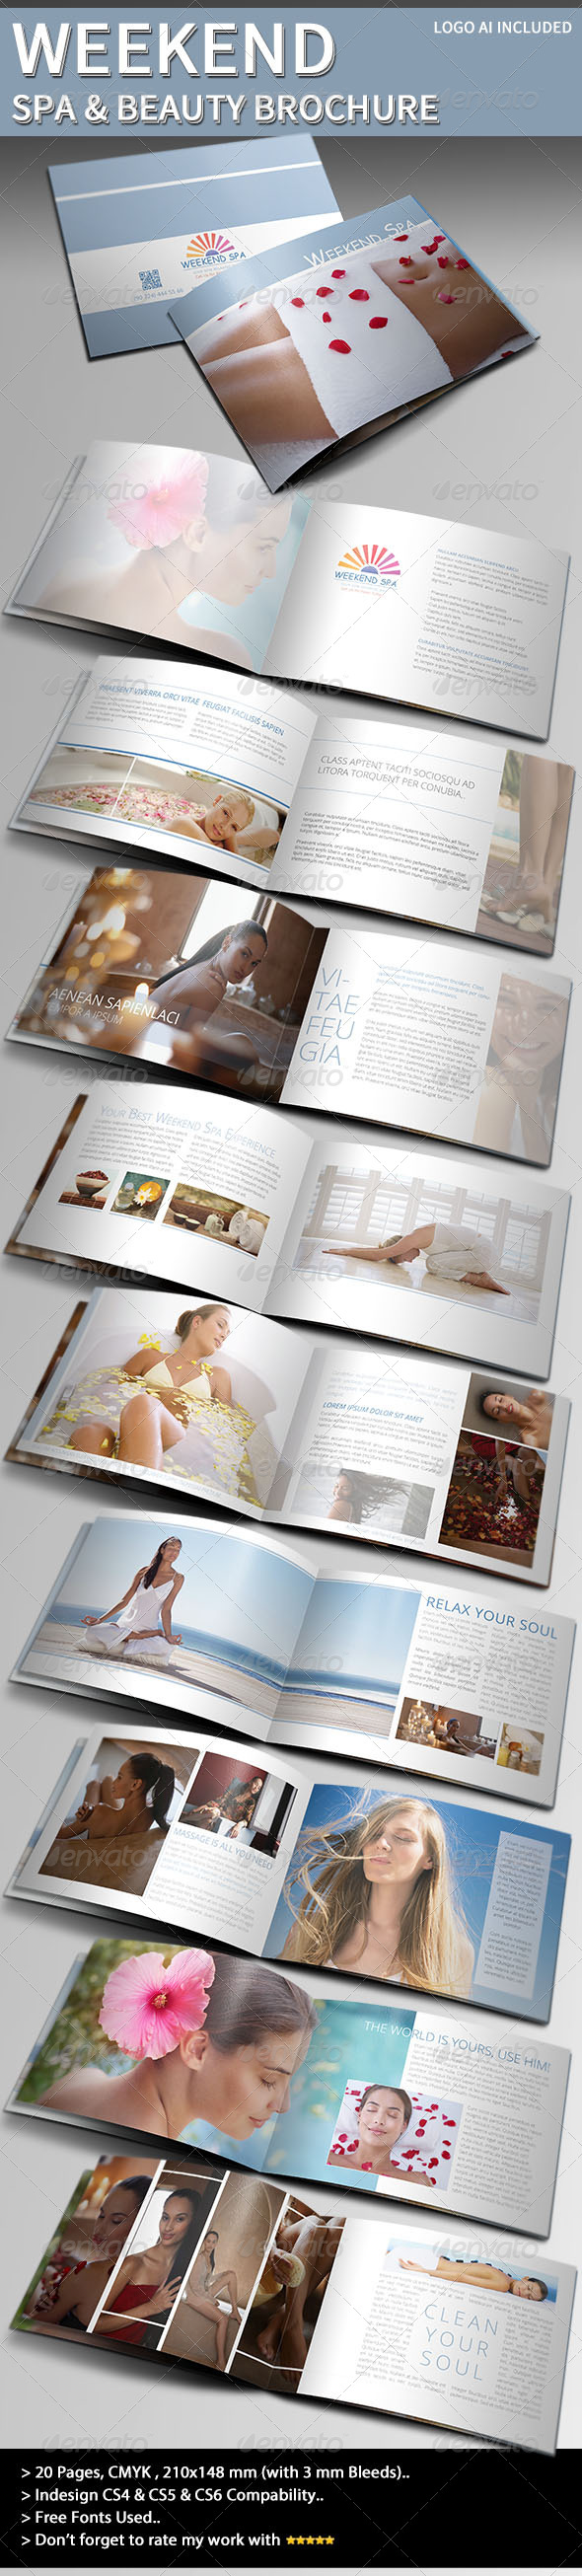 GraphicRiver Weekend Spa & Beauty Brochure 4022937